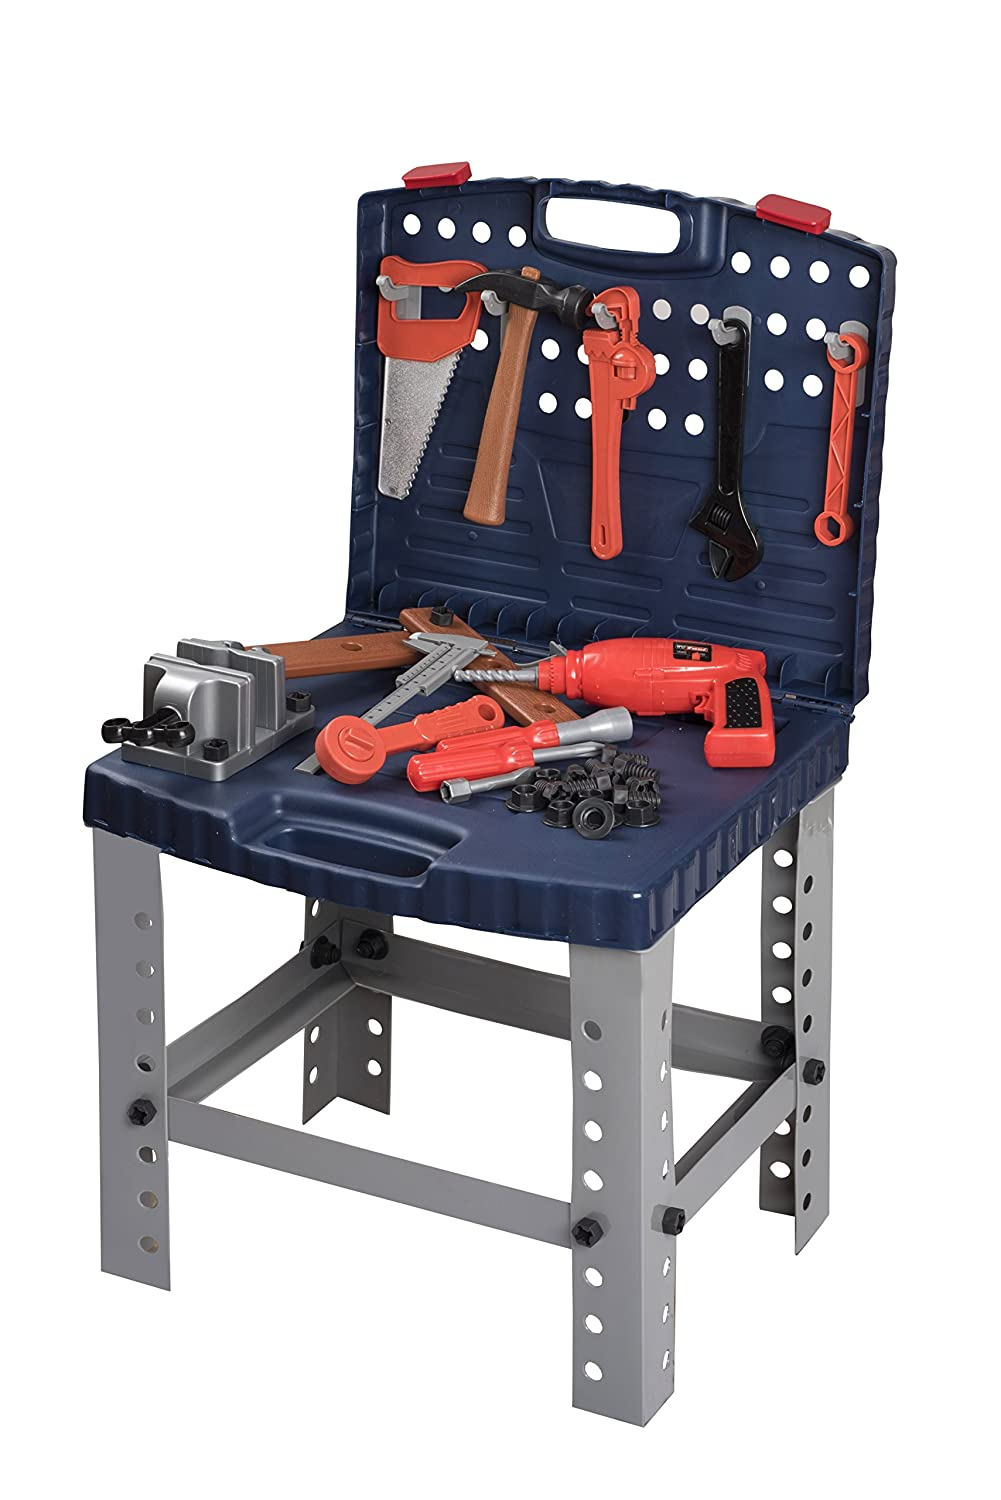 Toy Tool Set Workbench For Toddlers And Children Pretend Play- Kids Workshop Toolbench Building Toys - Kids Tools Playset With Realistic Tools And Electric Drill Toyrifik